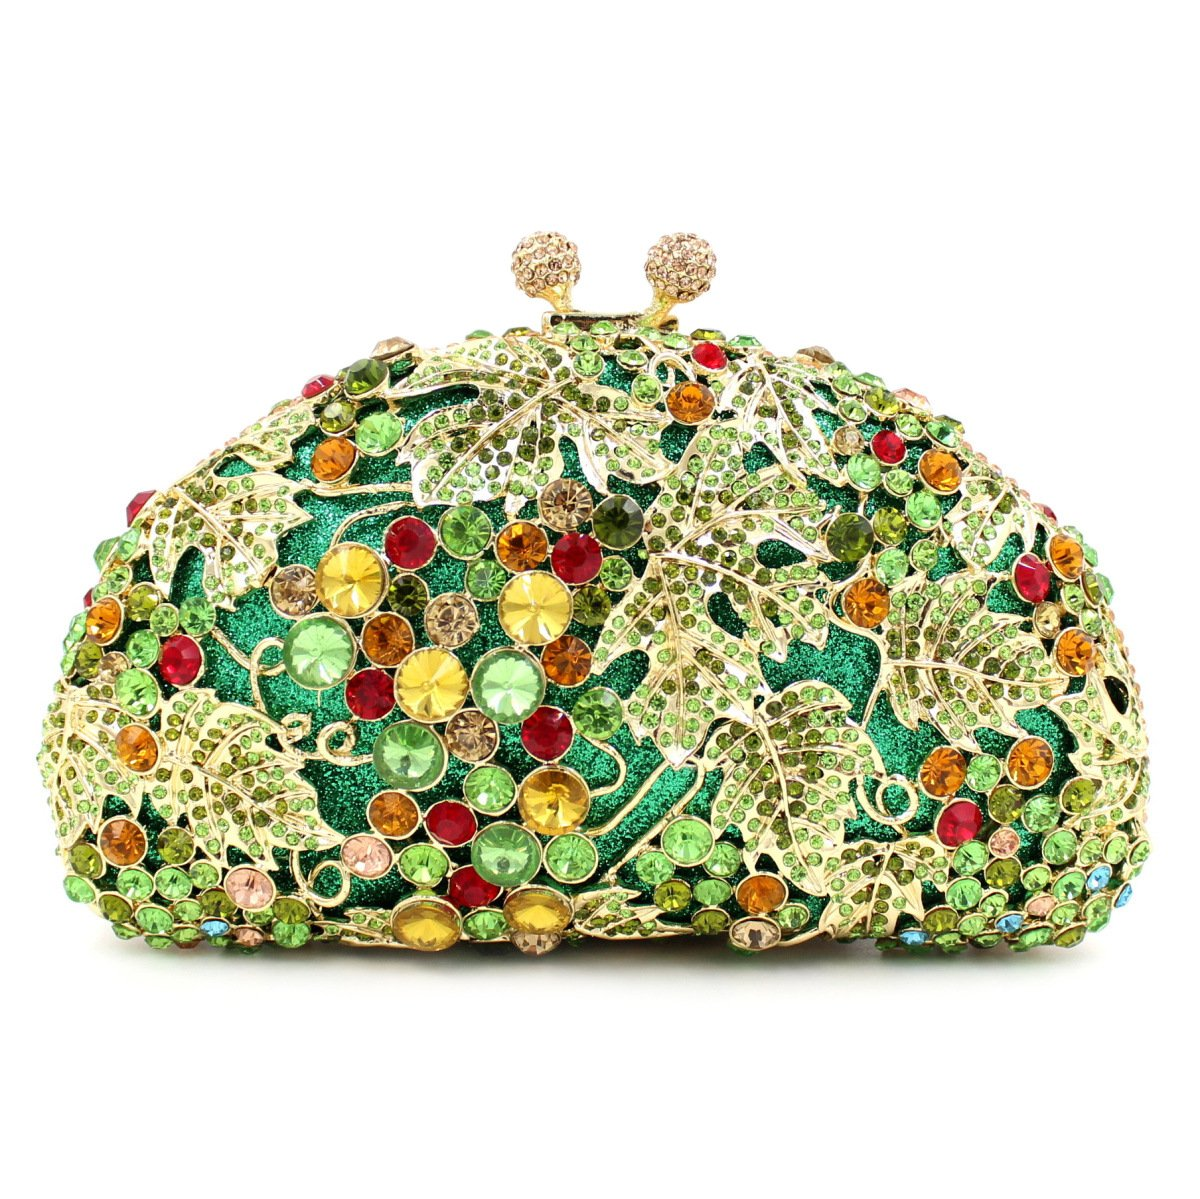 Flada Women and Girl's Evening Clutch Bag Grape Vine Handbag for Wedding Party Prom Green